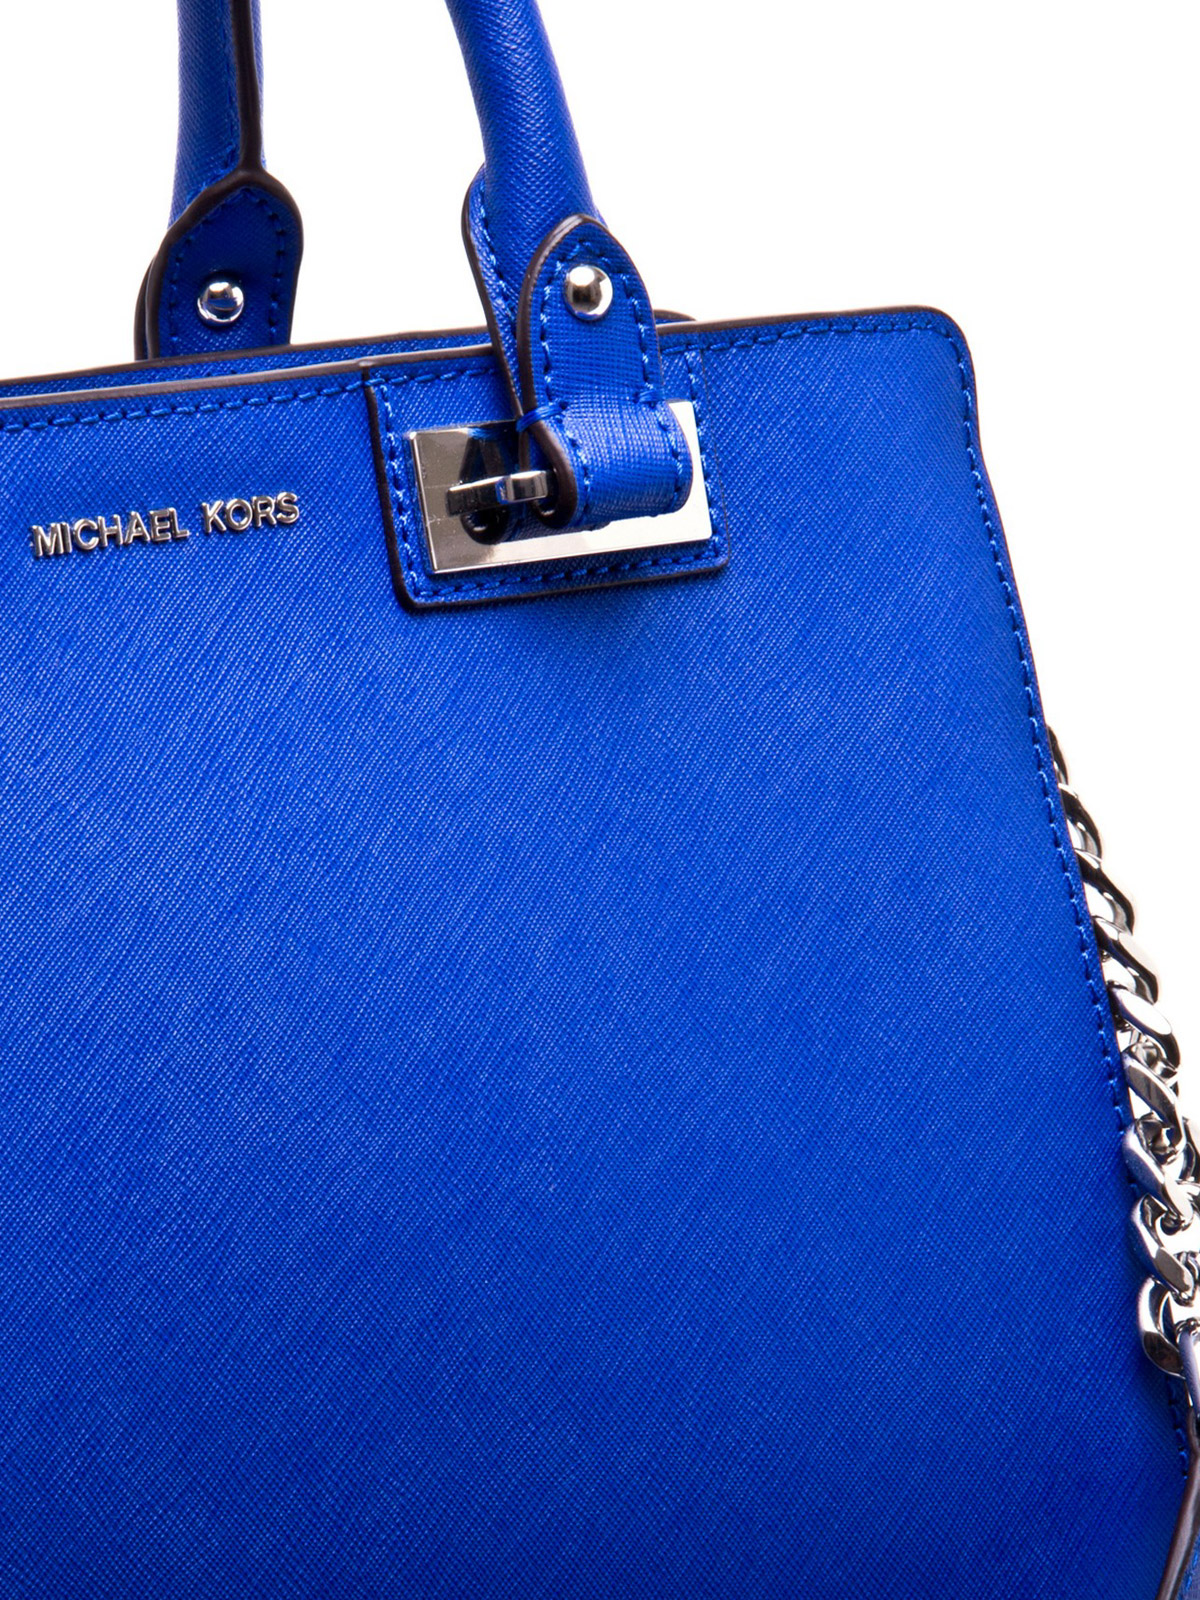 defd4686cddf ... coupon code for michael kors buy online quinn saffiano leather tote  d59ac 8eb38